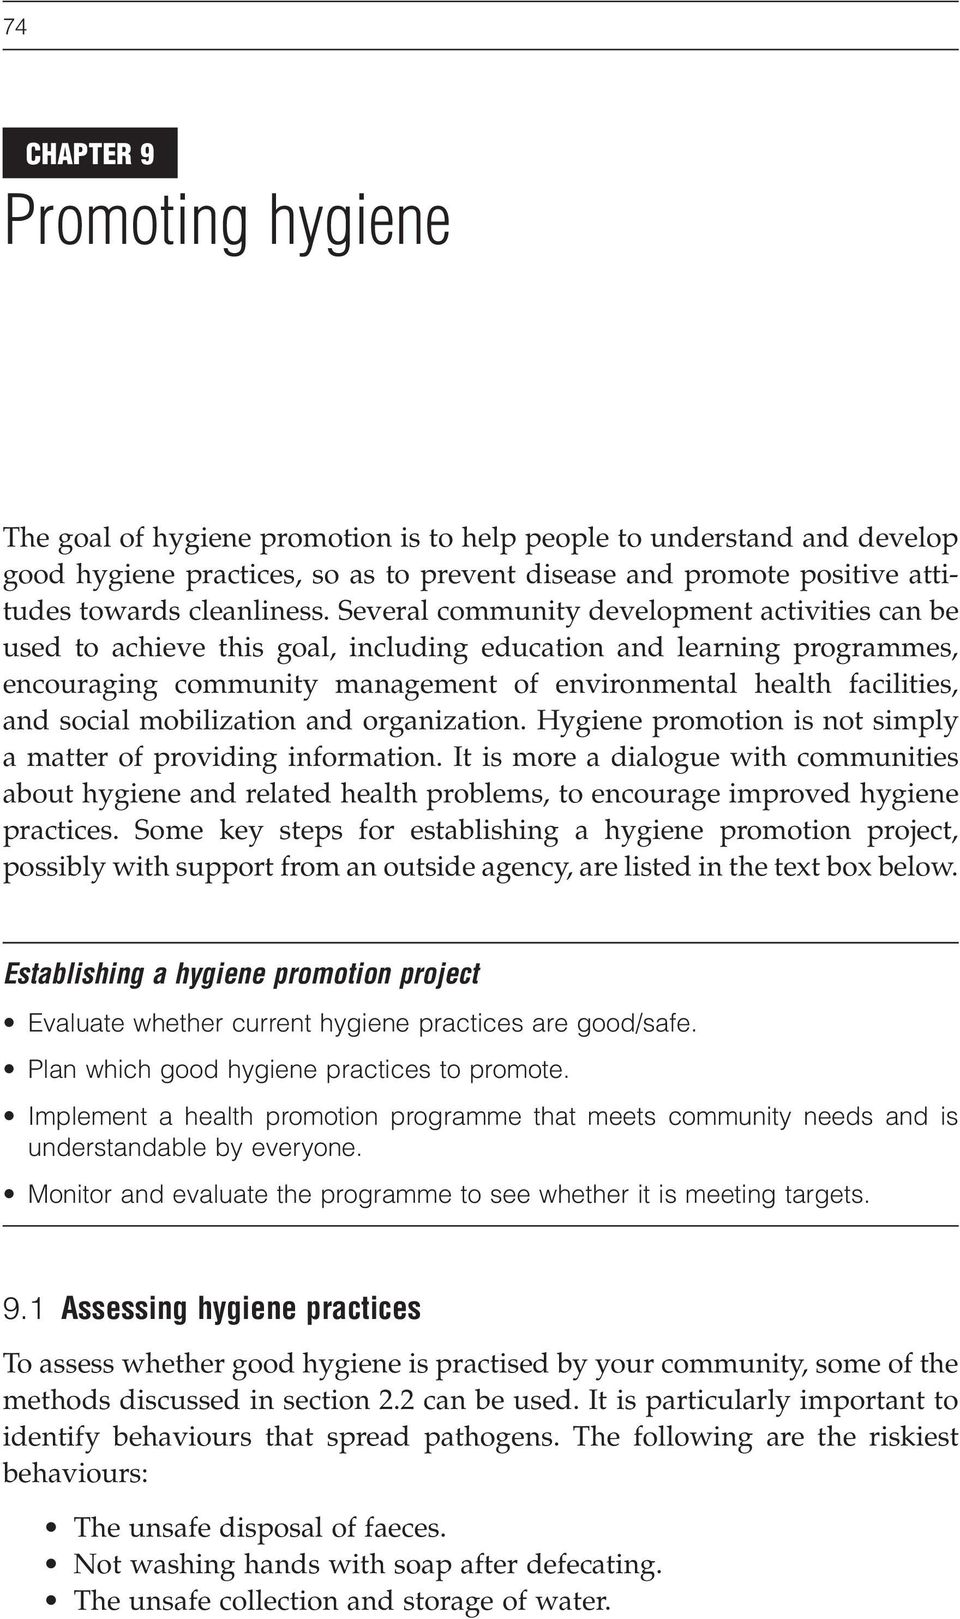 Several community development activities can be used to achieve this goal, including education and learning programmes, encouraging community management of environmental health facilities, and social